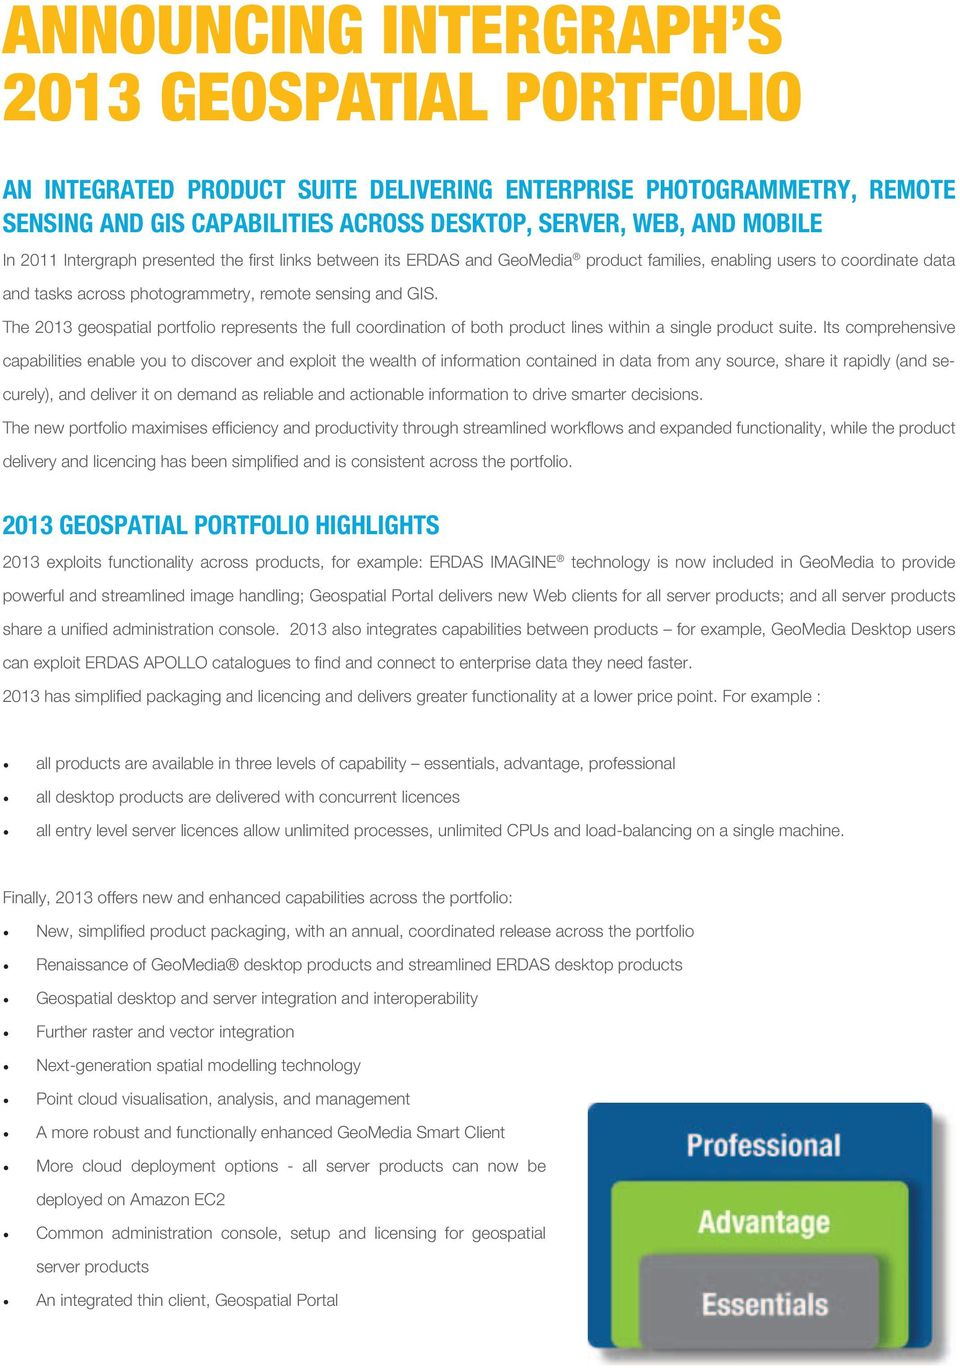 The 2013 geospatial portfolio represents the full coordination of both product lines within a single product suite.